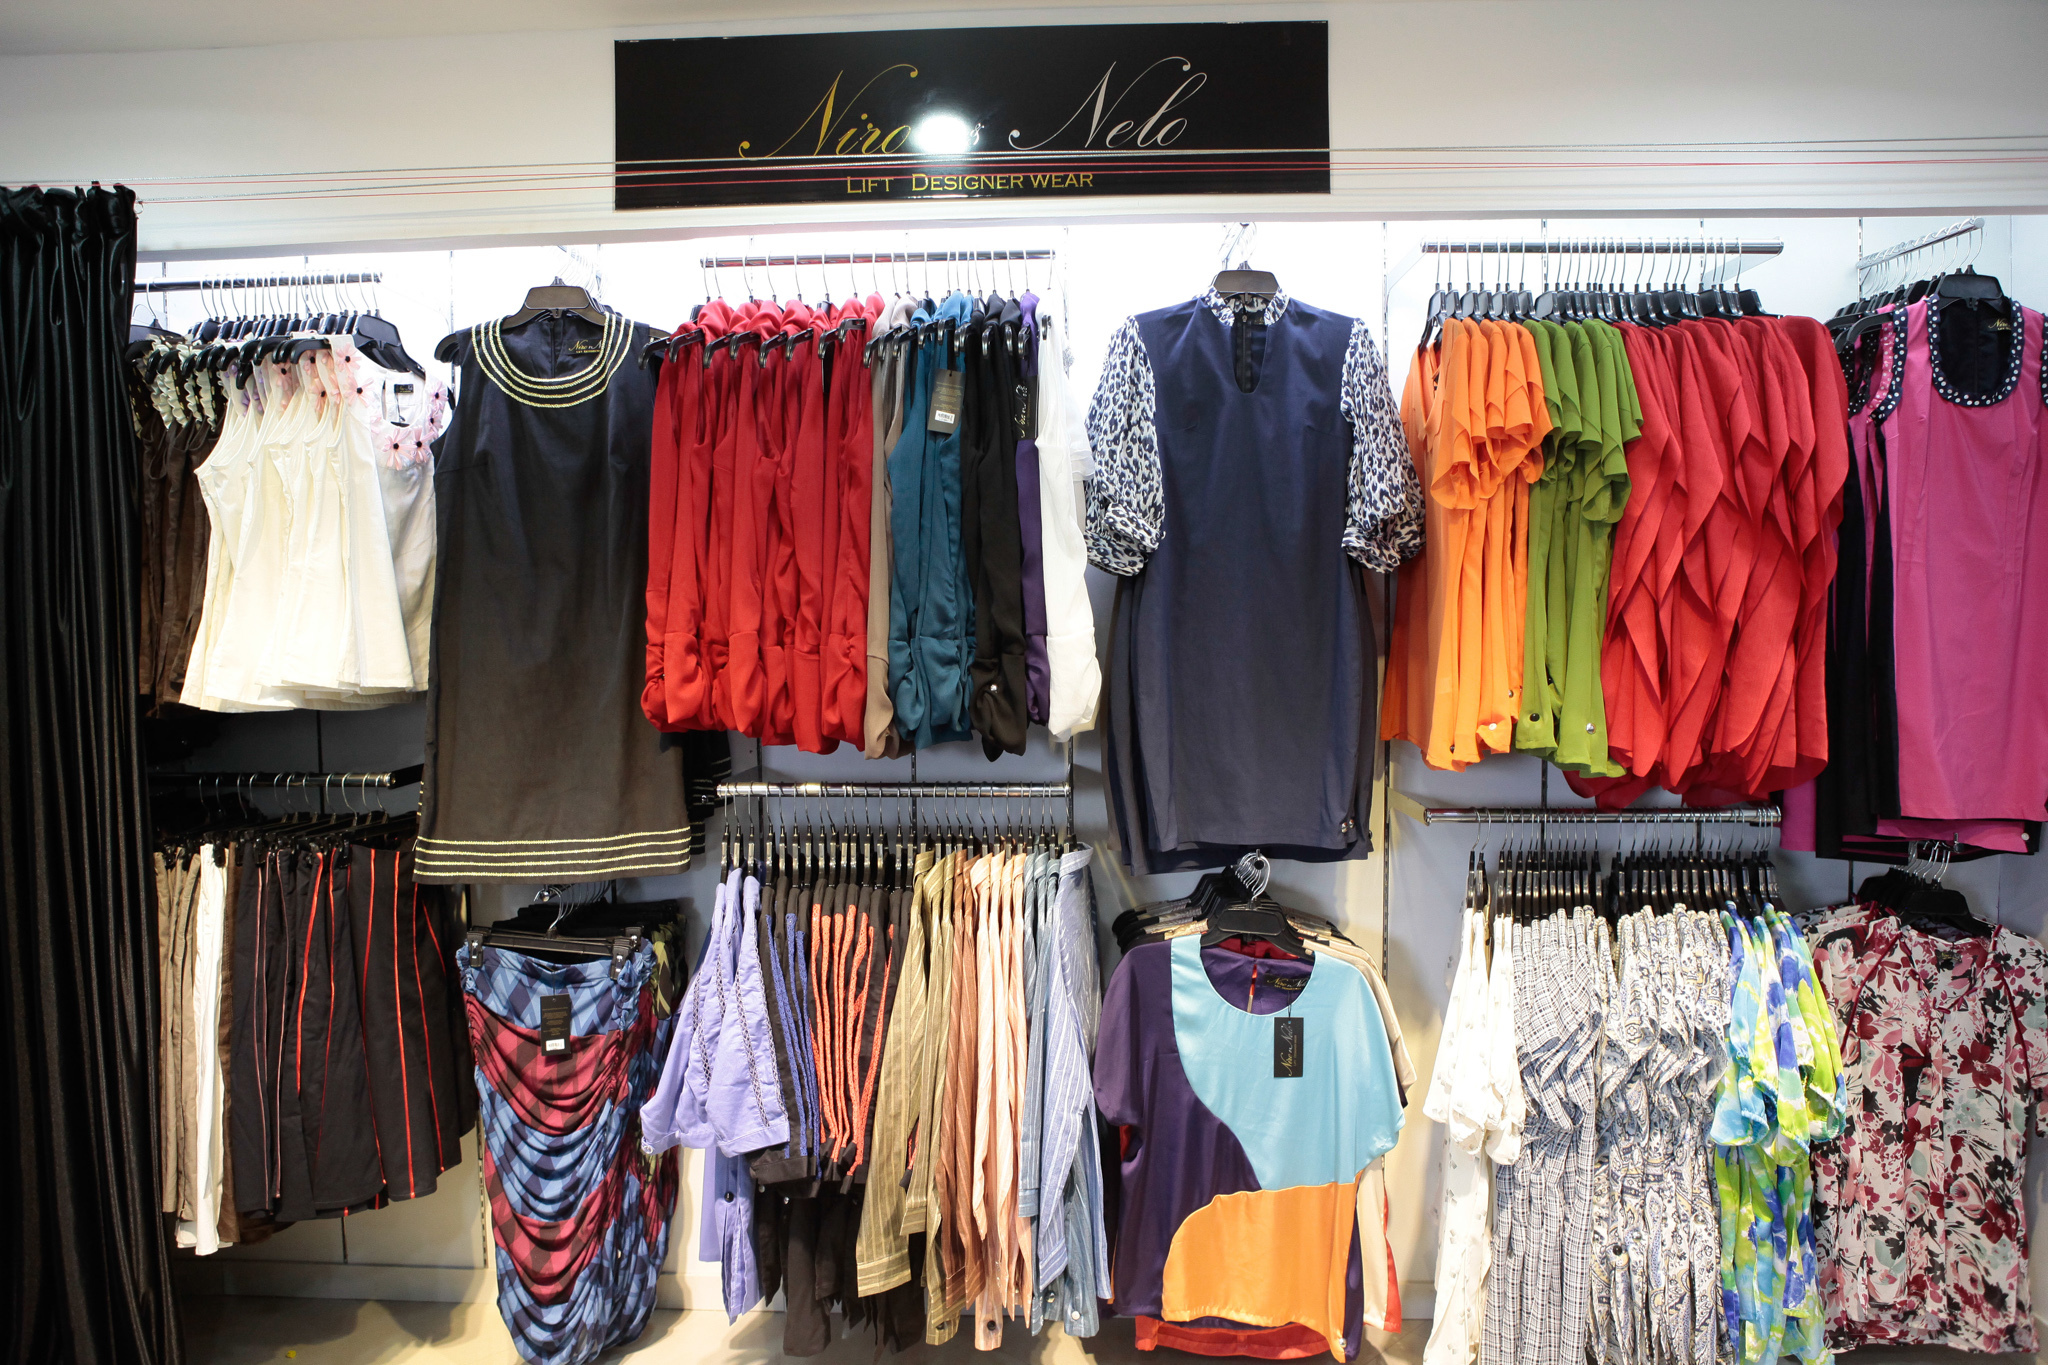 Lady Golf - The Fashion House. We are much more than golf offering unique and hard to find women's sportswear, travel & daily wear apparel, golf & street shoes, equestrian apparel, fitness clothes for workout, gym, yoga, pilates, running and tennis wear in women's petite to plus sizes. Celebrating our 25th Year as the Nation Leading Retailer for women's sportswear, gifts and accessories.